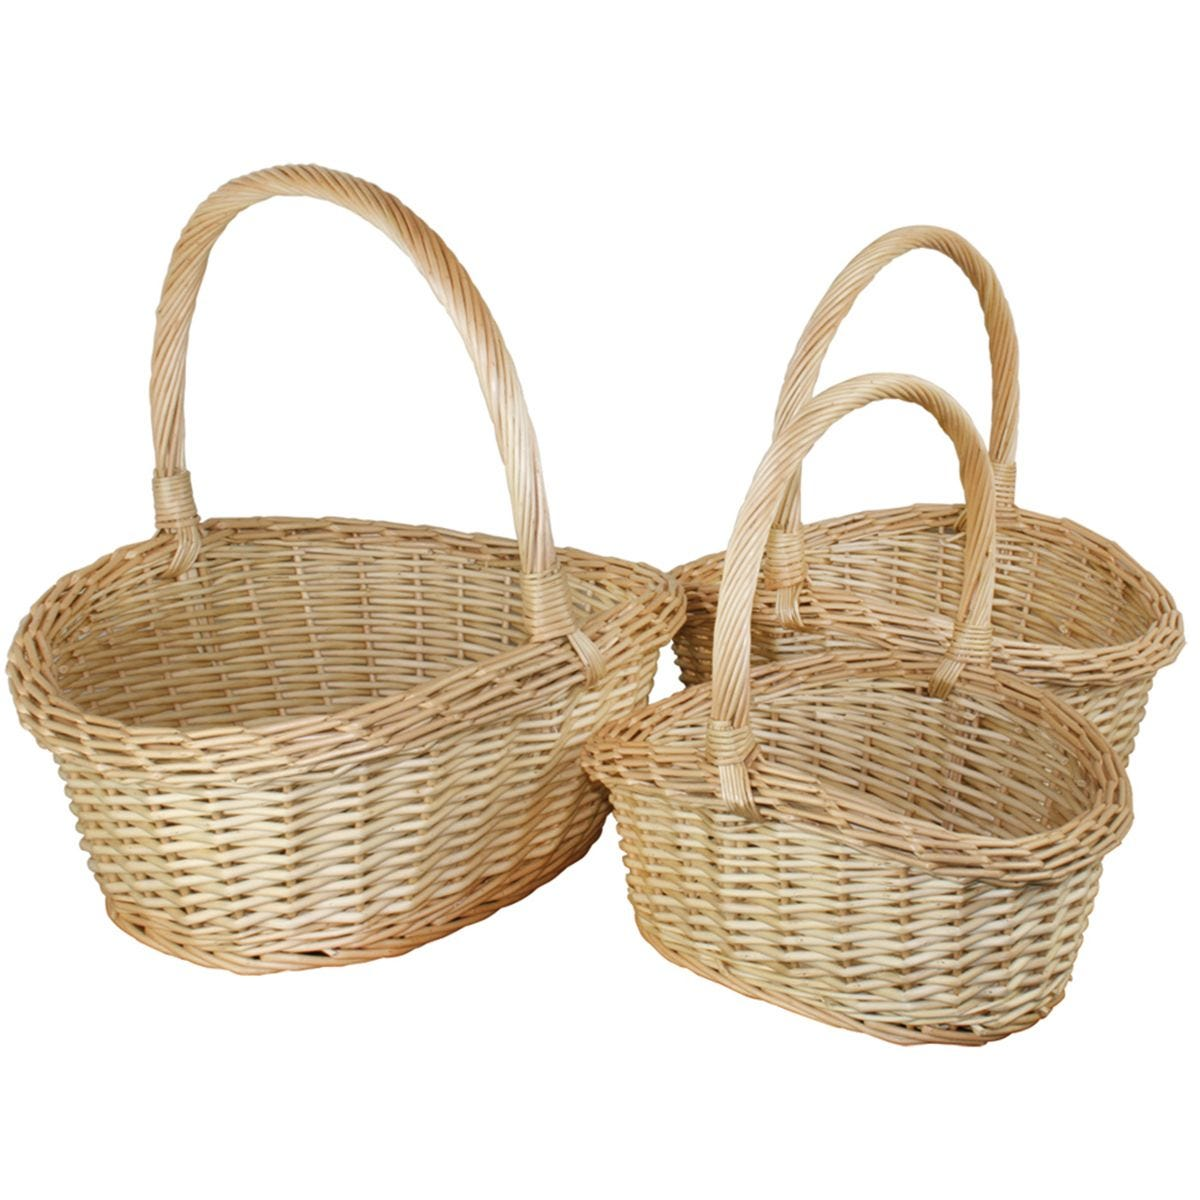 JVL Set Of 3 Oval Steamed Willow Storage Baskets Bedroom Home Caravan Office